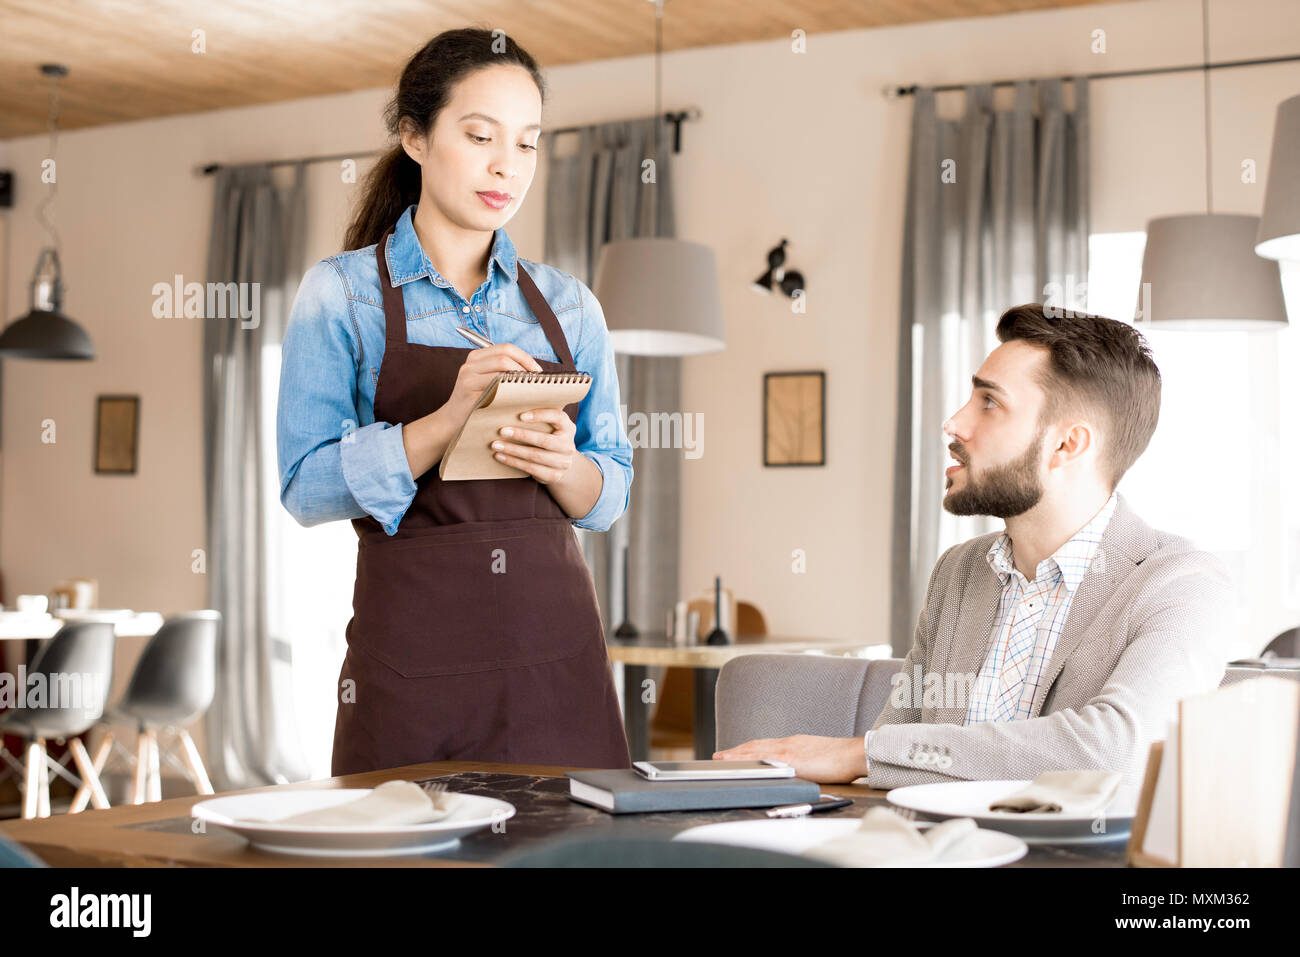 Serious waitress talking business lunch order - Stock Image